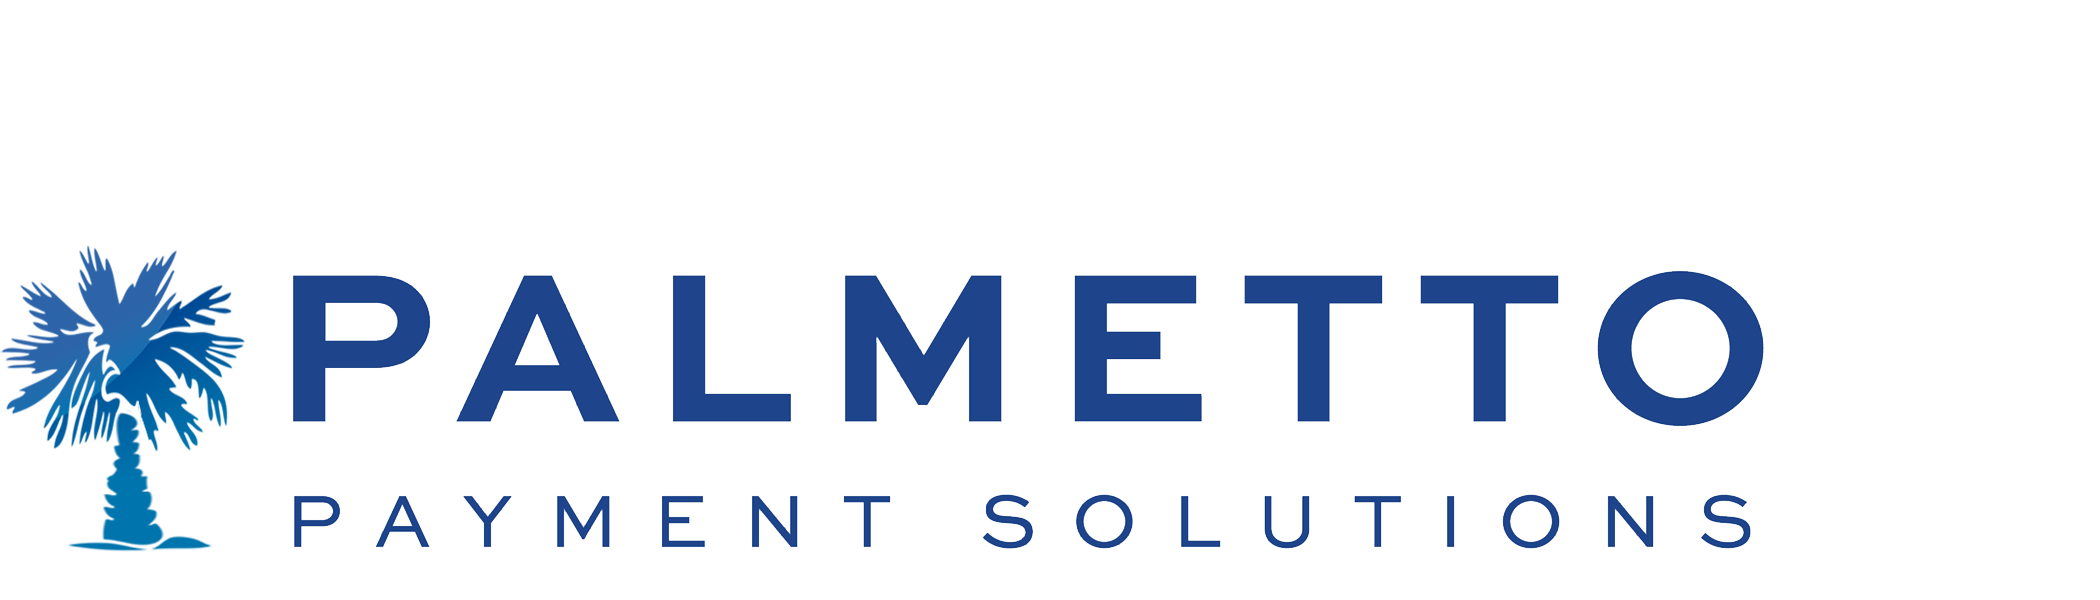 Palmetto Payment Solutions